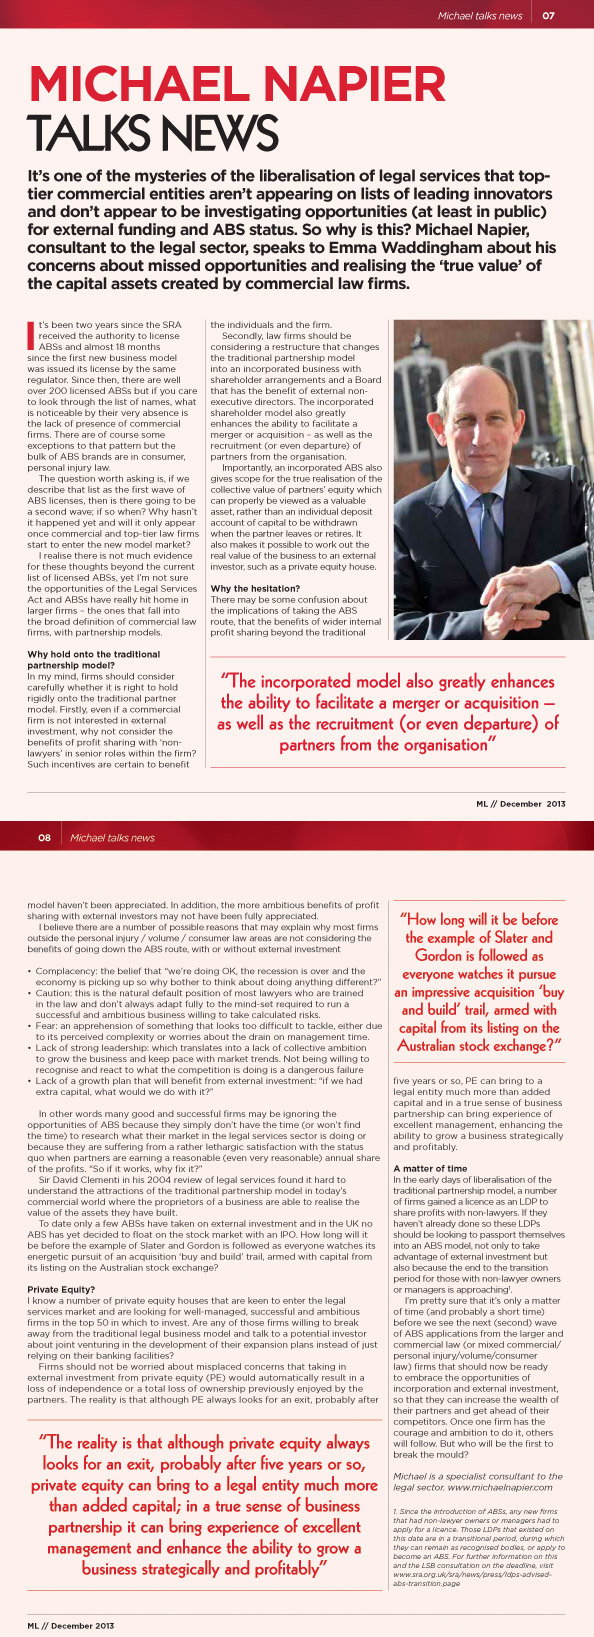 Modern-Law-Magazine-Issue-9-7&8-1